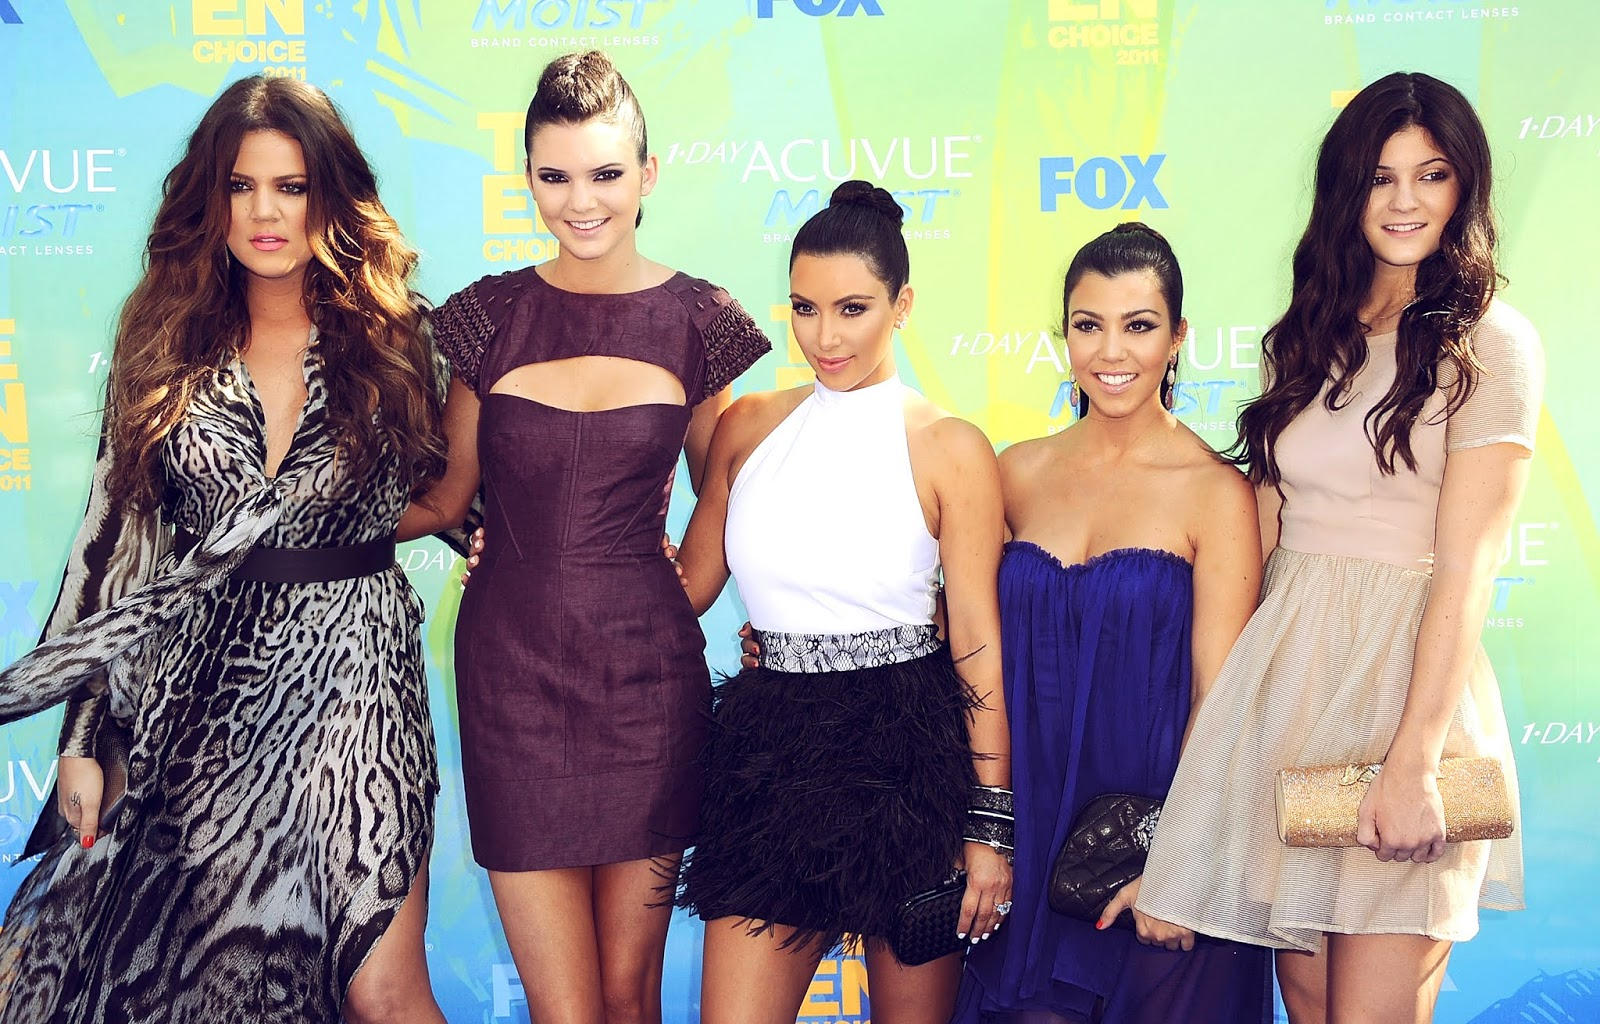 32 - Teen Choice Awards in August 11, 2011